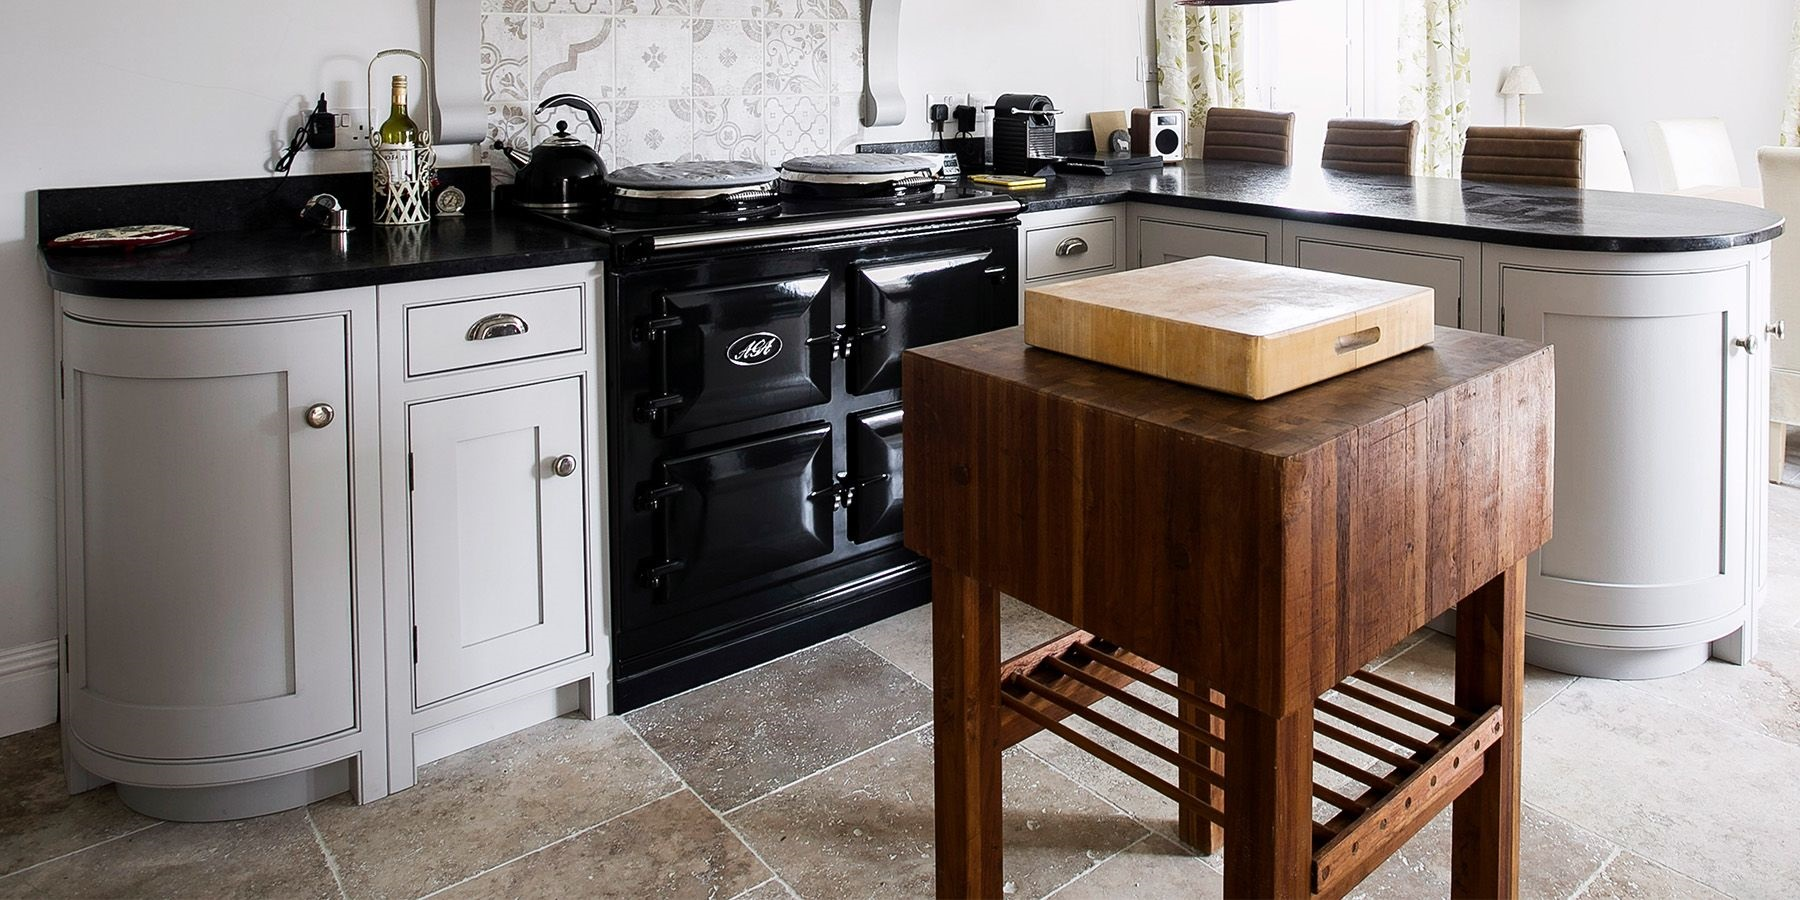 Burlanes Country Kitchen With Ca'Pietra Stone Flooring - Burlanes handmade country kitchen with beautiful natural stone floor tiles by Ca'Pietra.